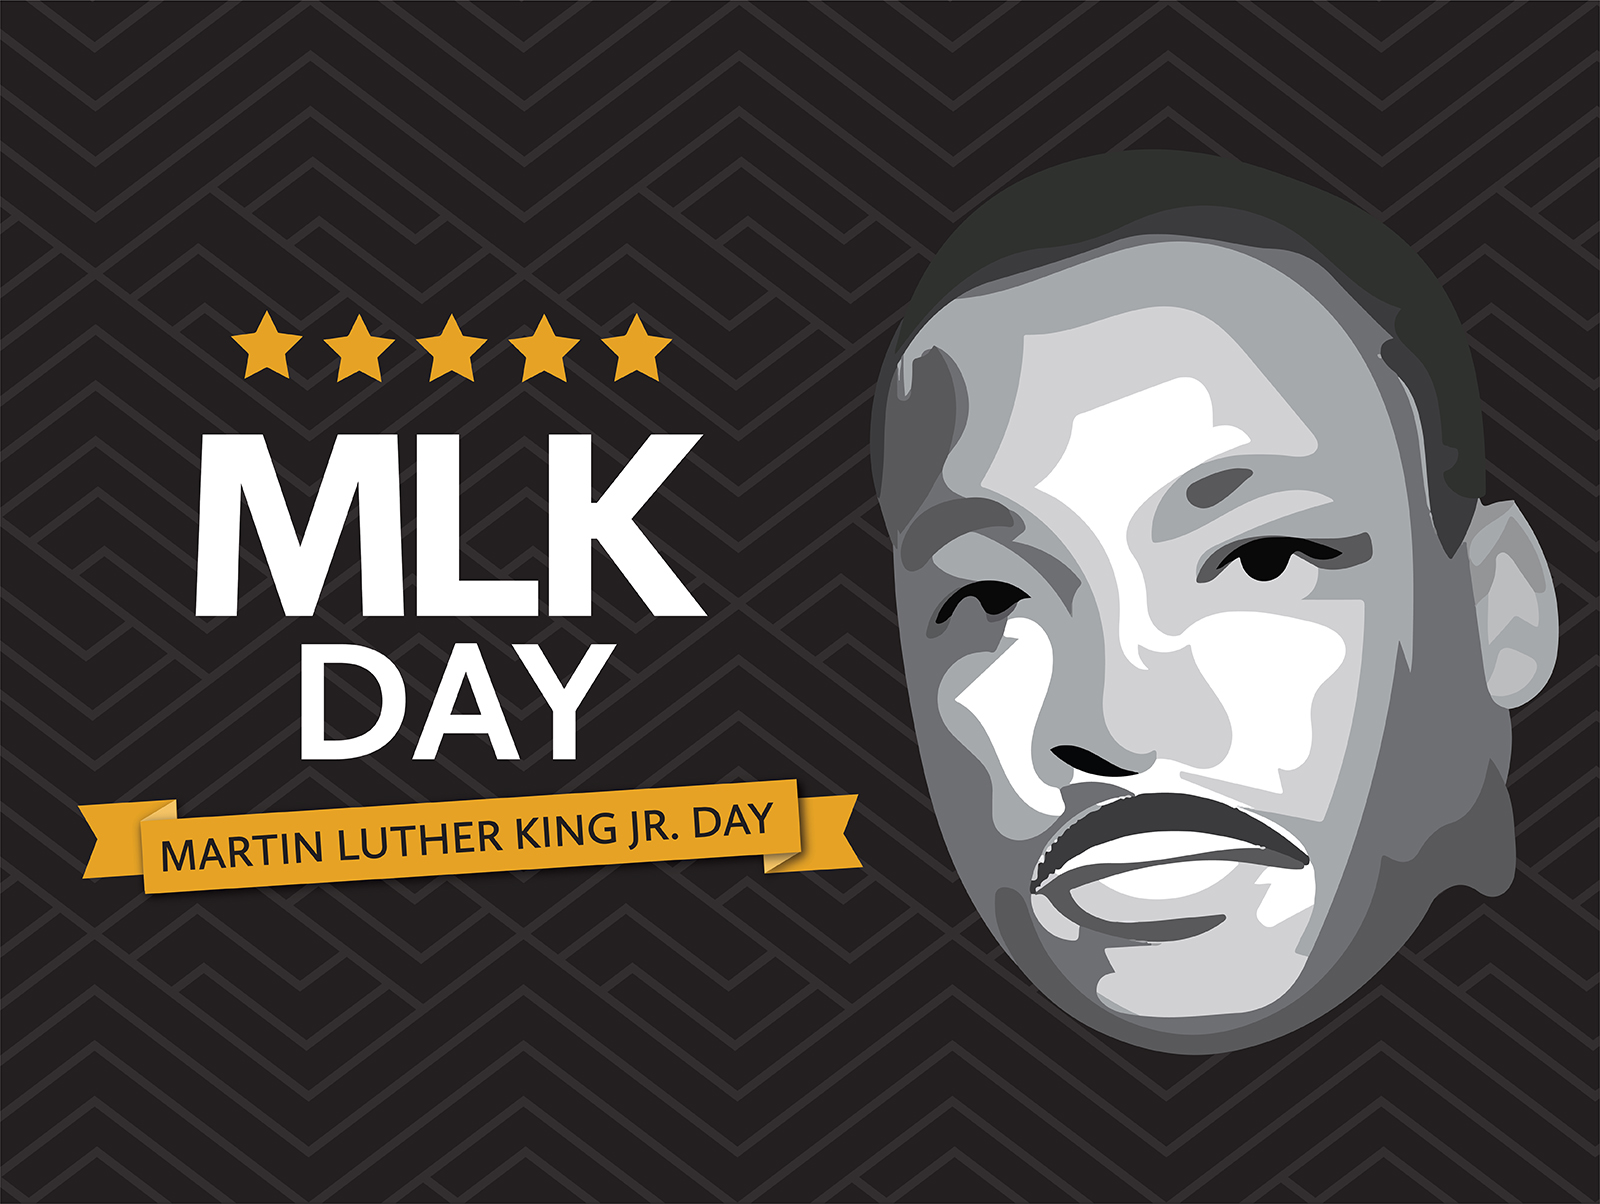 St Olaf To Mark Martin Luther King Jr Day With Unity March Lecture And Other Events St Olaf College